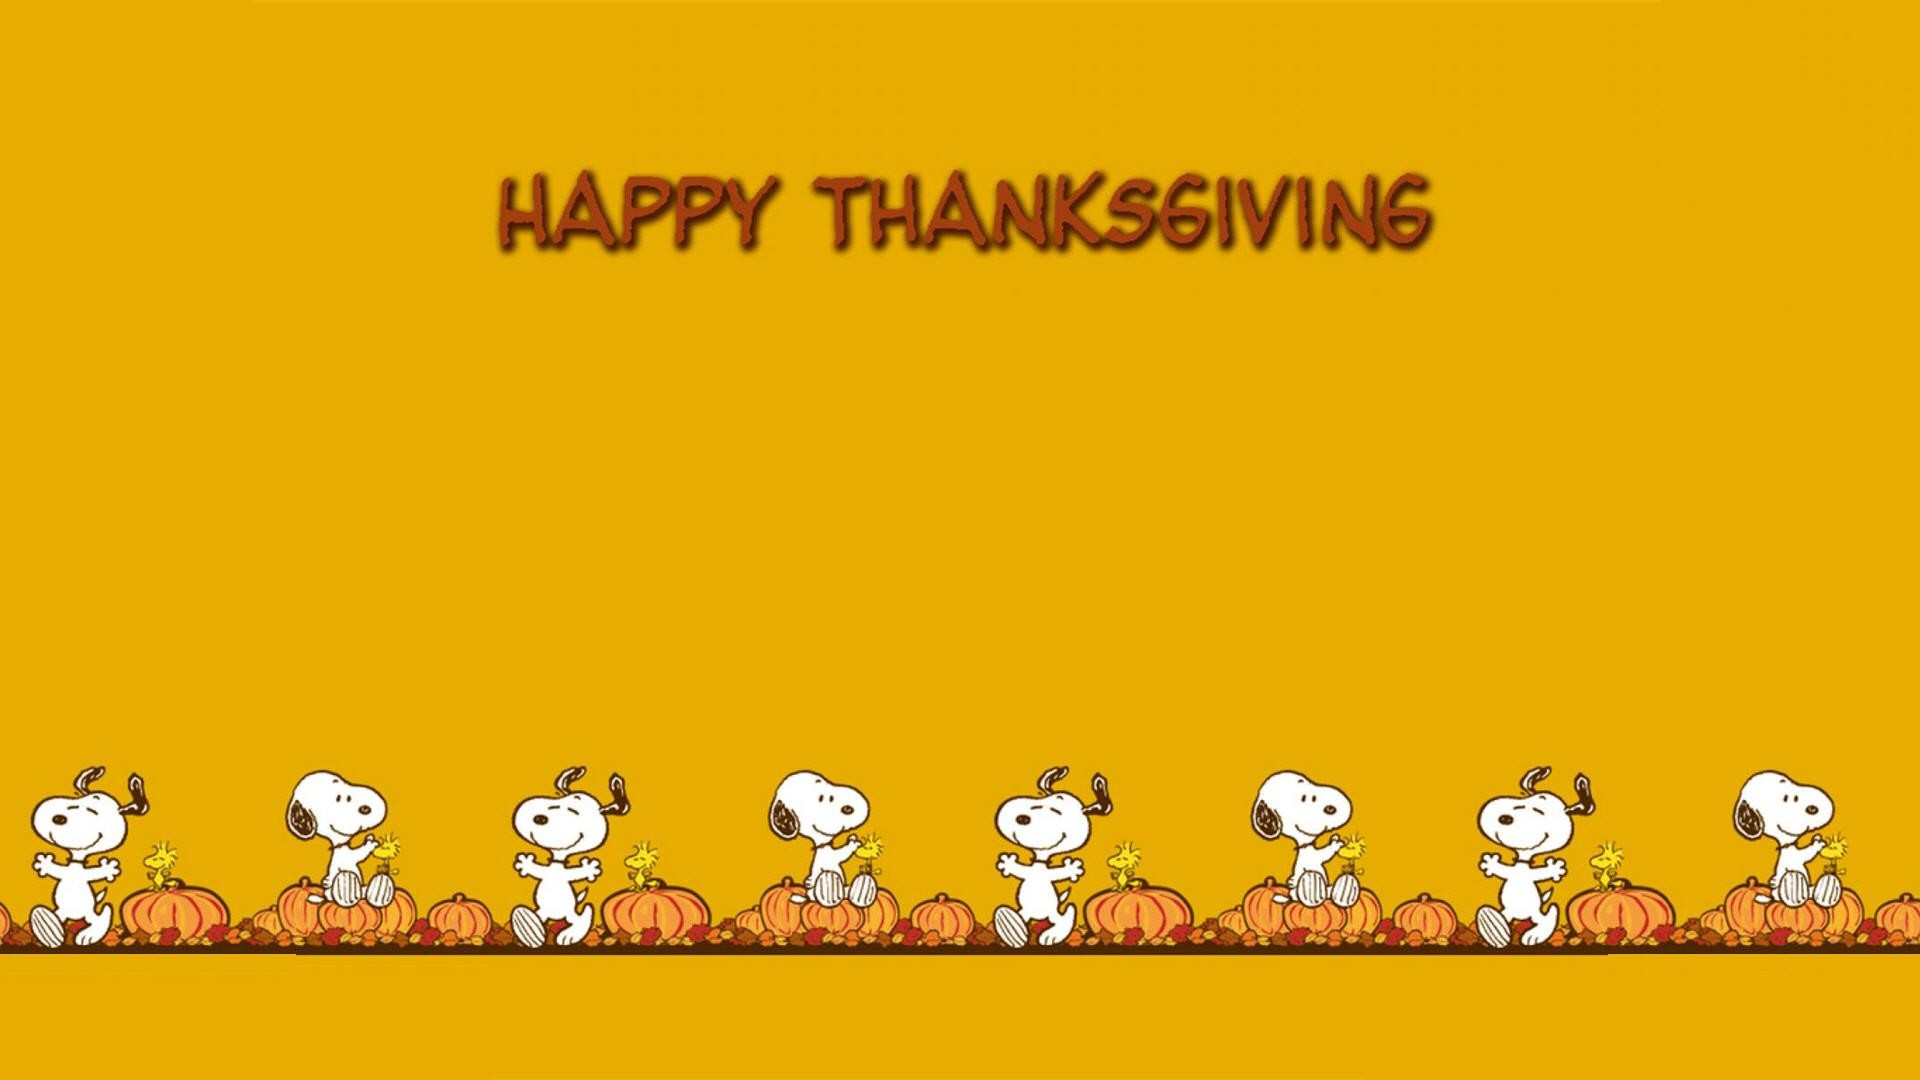 Snoopy Thanksgiving Wallpaper Backgrounds Widescreen